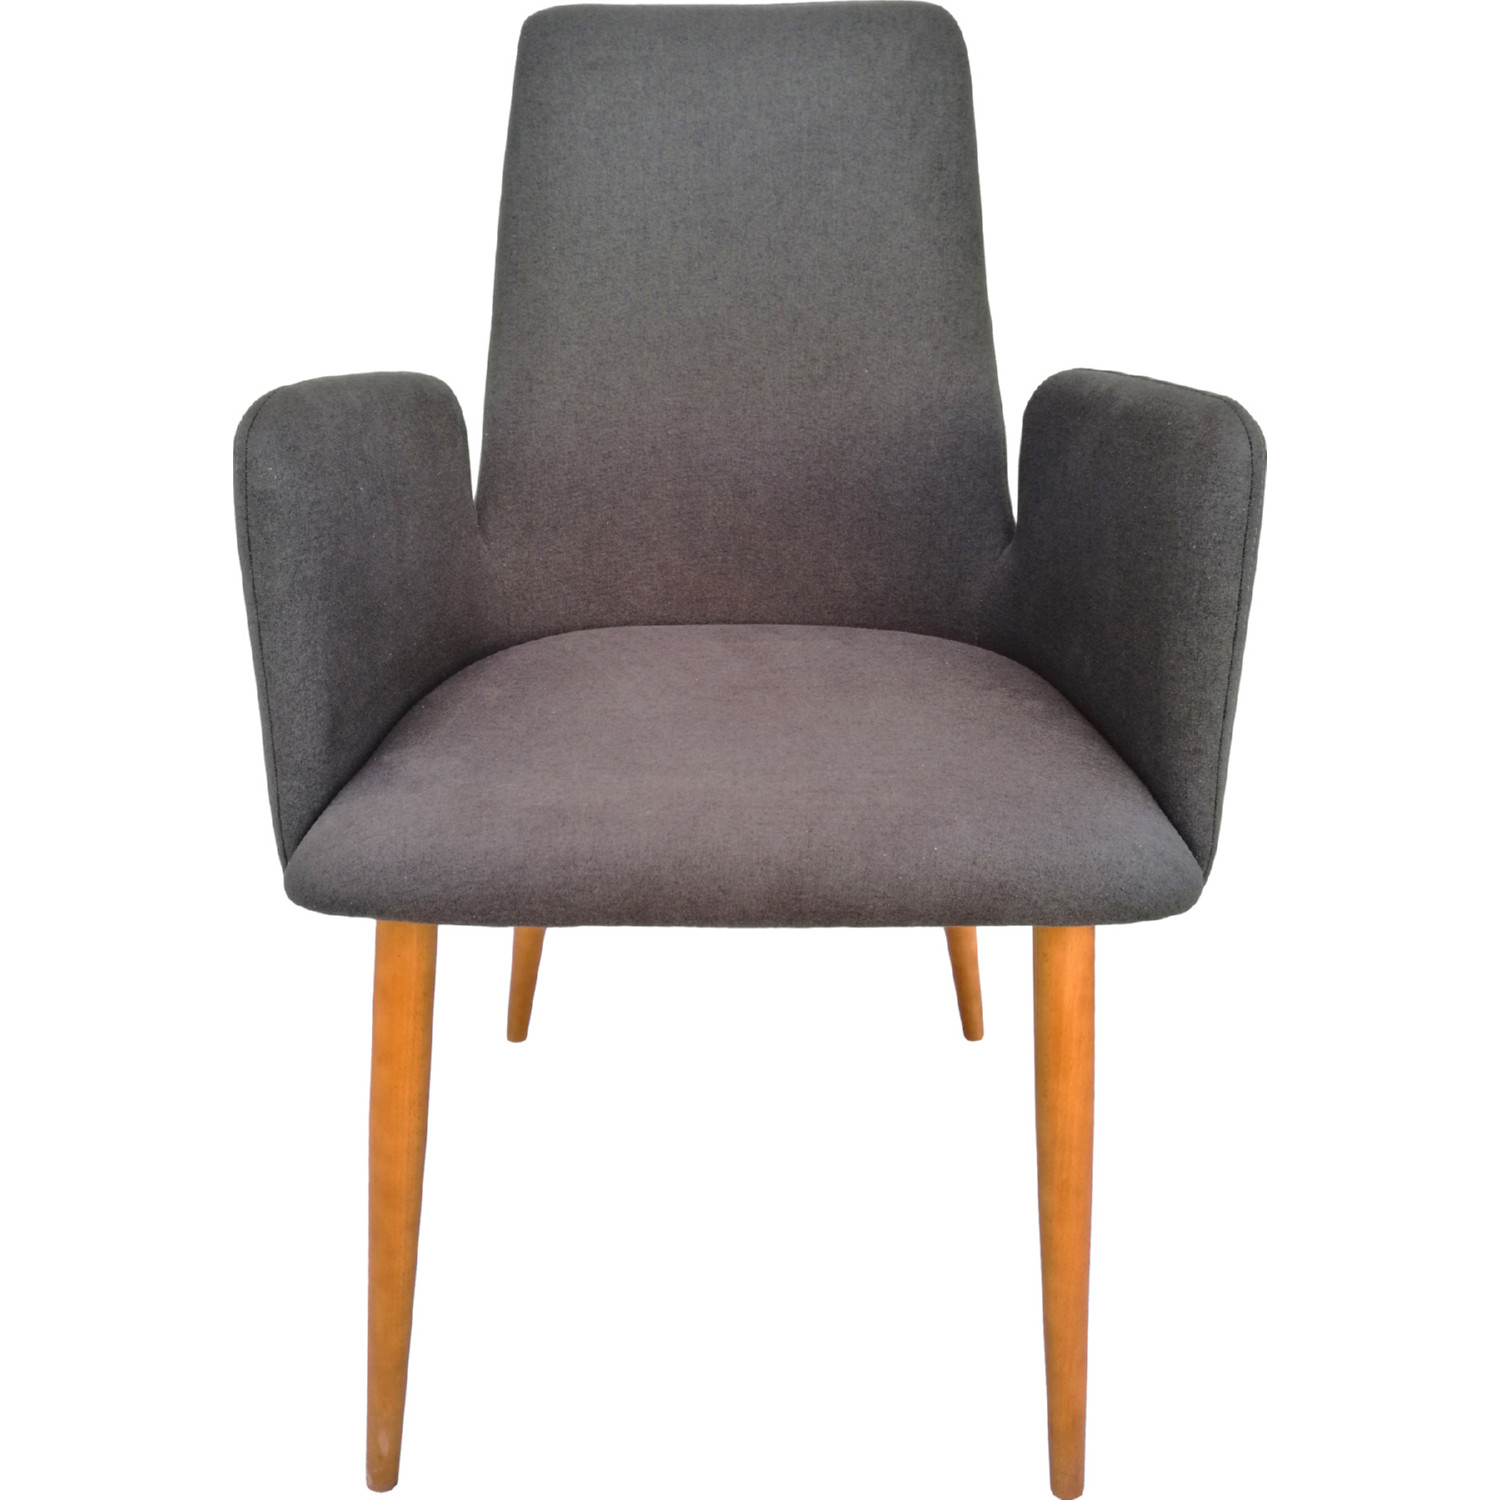 Stupendous Chesney Dining In Chair Grey Fabric On Beechwood Legs By Alphanode Cool Chair Designs And Ideas Alphanodeonline